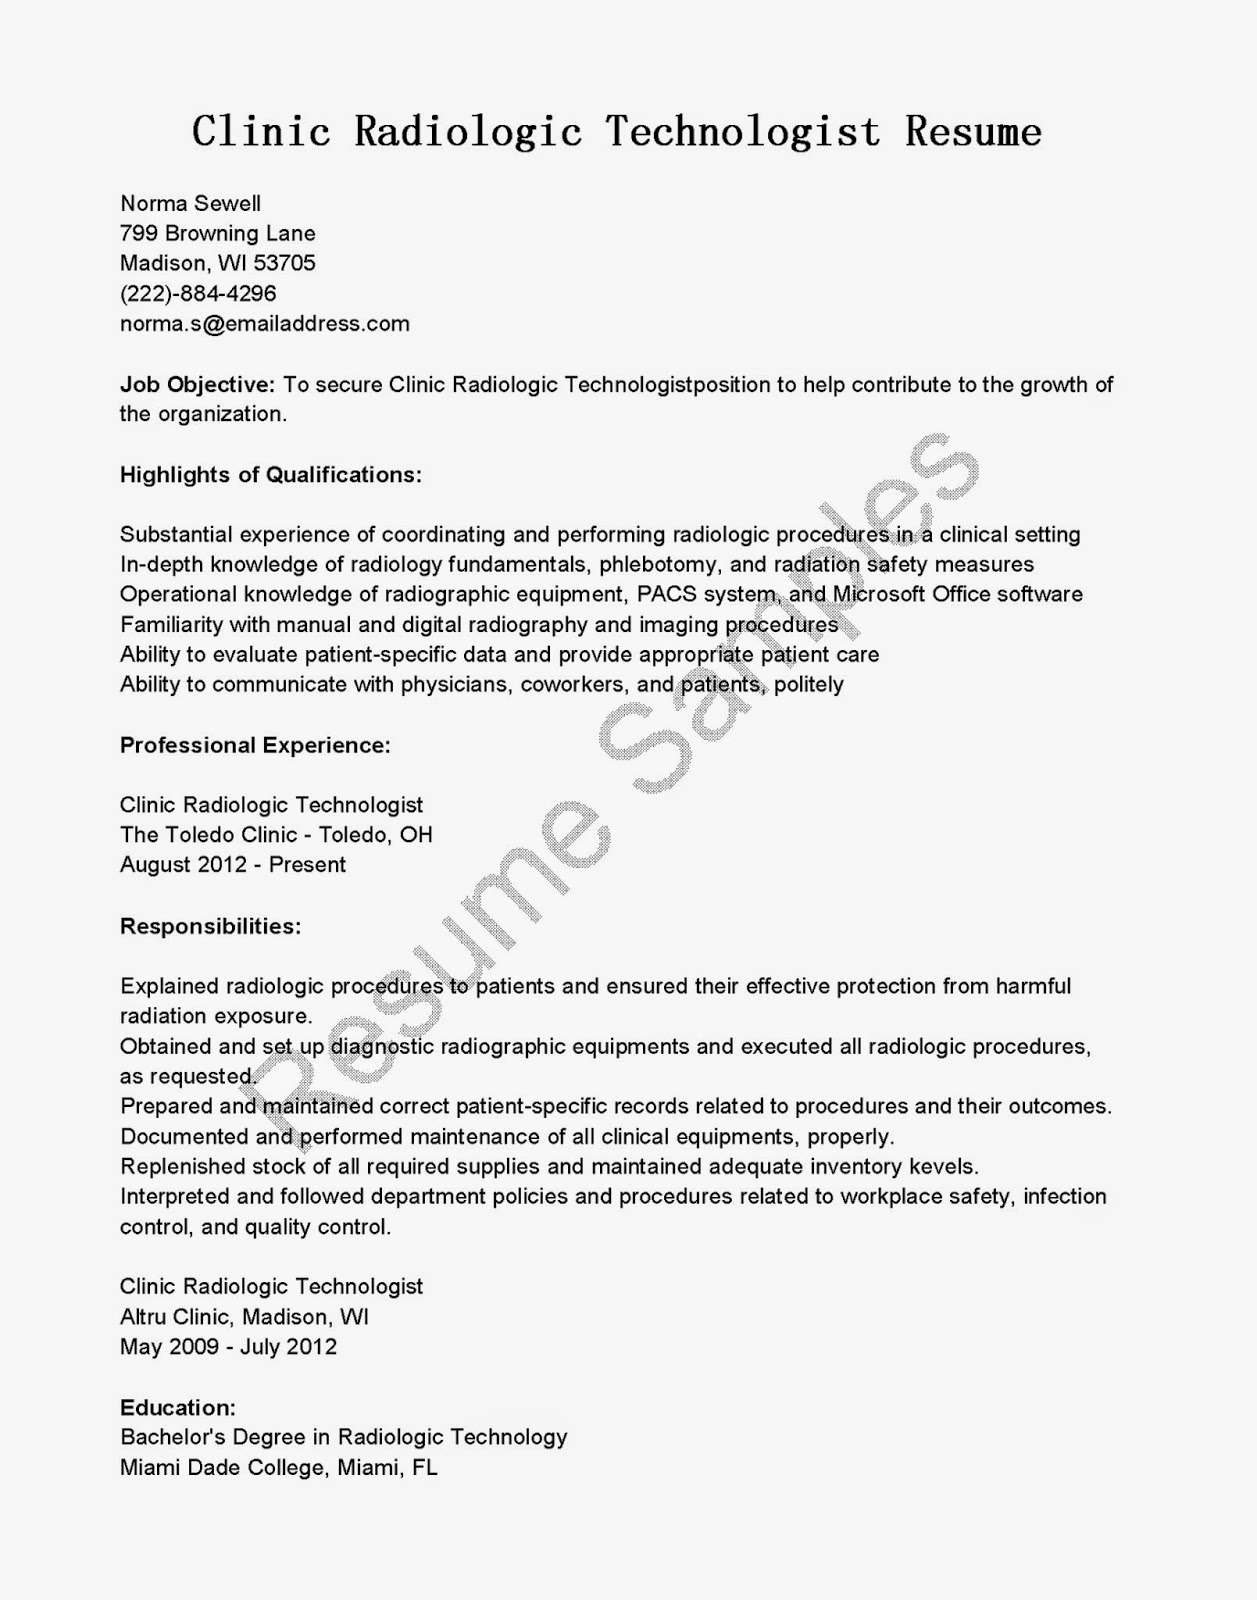 hdkksj essay Whats the beef essay · essay informal letter pmr · essay on motivation on english learning · entrepreneurship essays mba · essay on fathers and sons · a beautiful mind essay questions · gcse gateway science suite coursework · vietnam essay intro · hdkksj essay · cyberessays login · school scholarships · writing erotica.